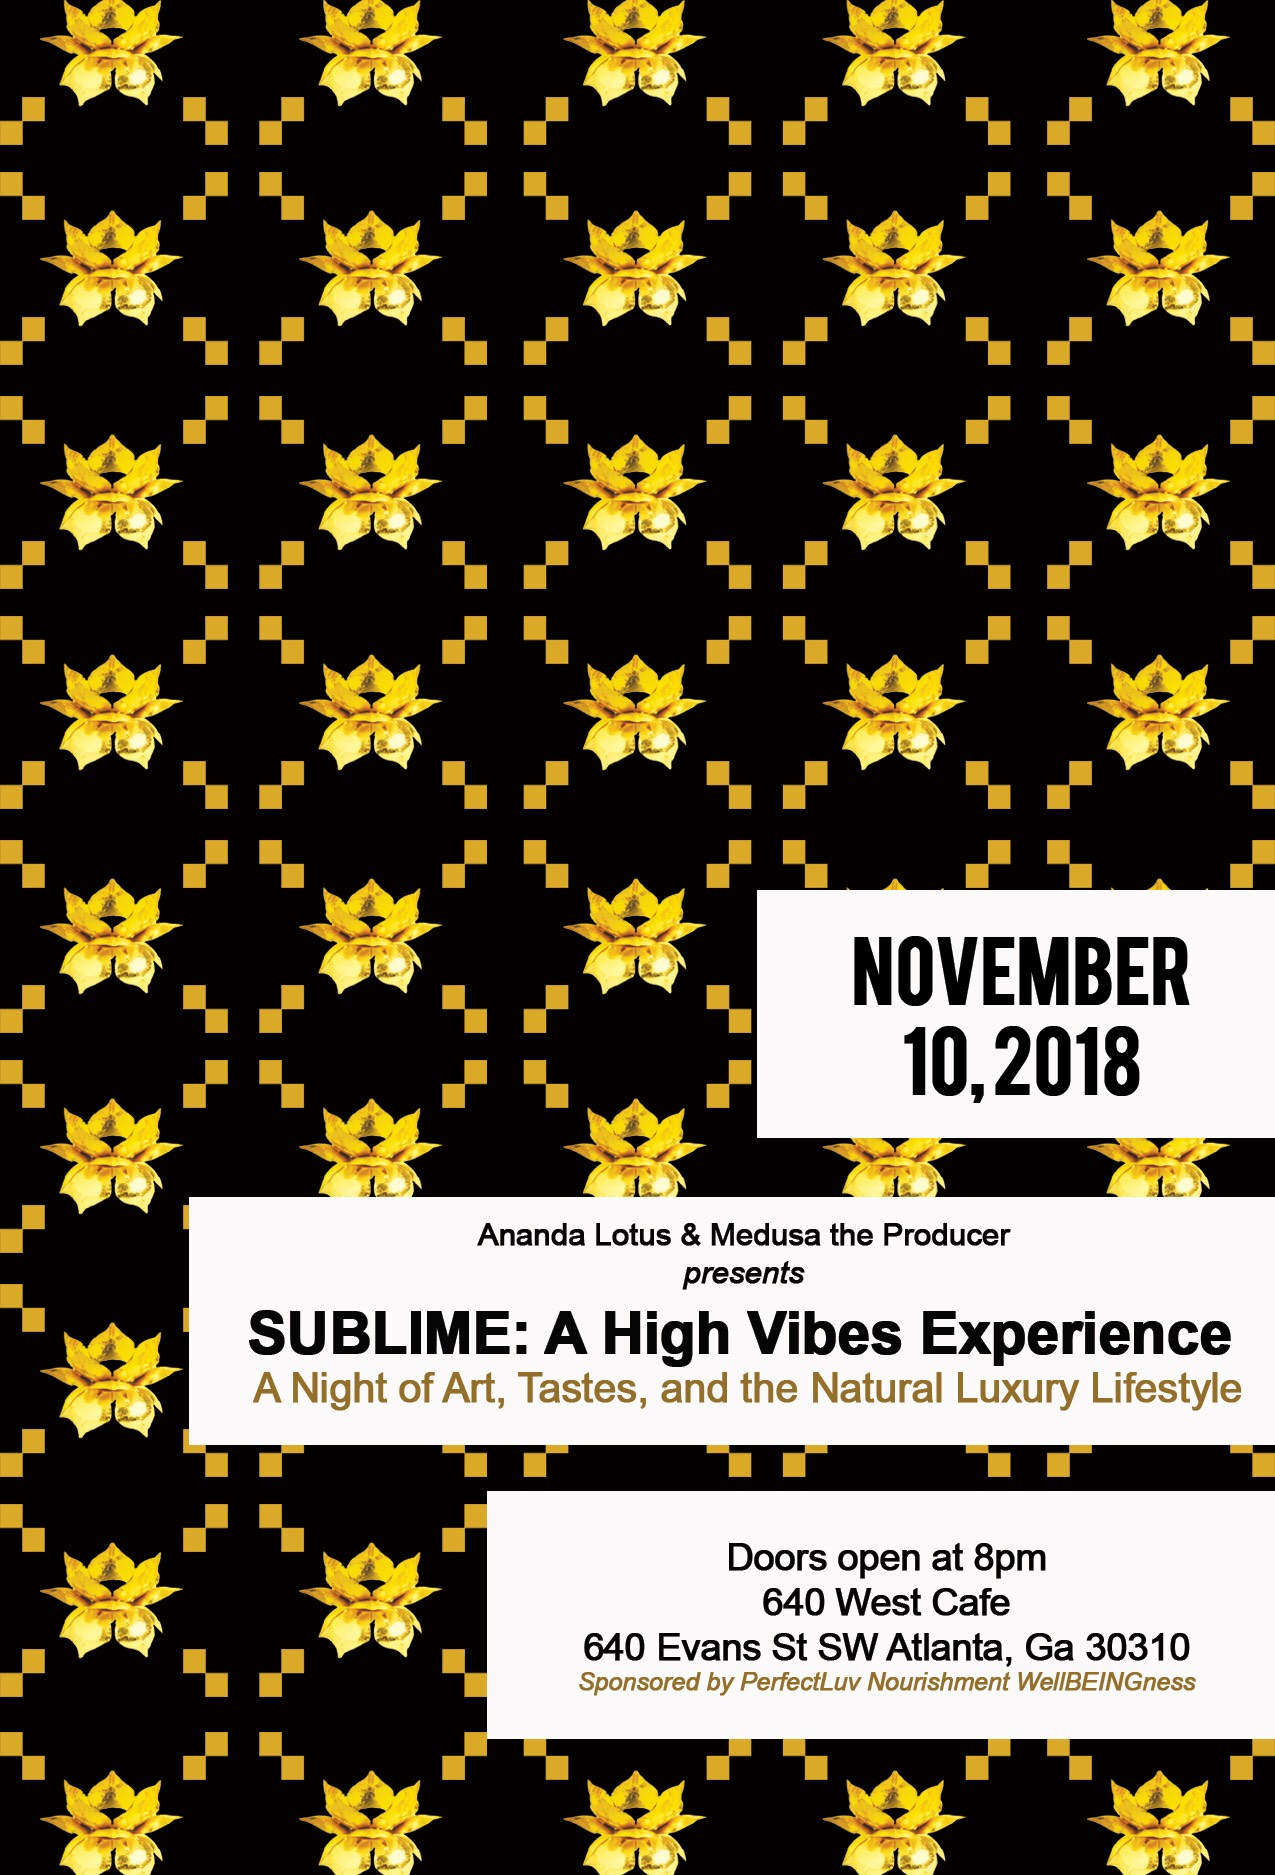 2018.11.10 Sublime-A High Vibes Experience p1.jpeg